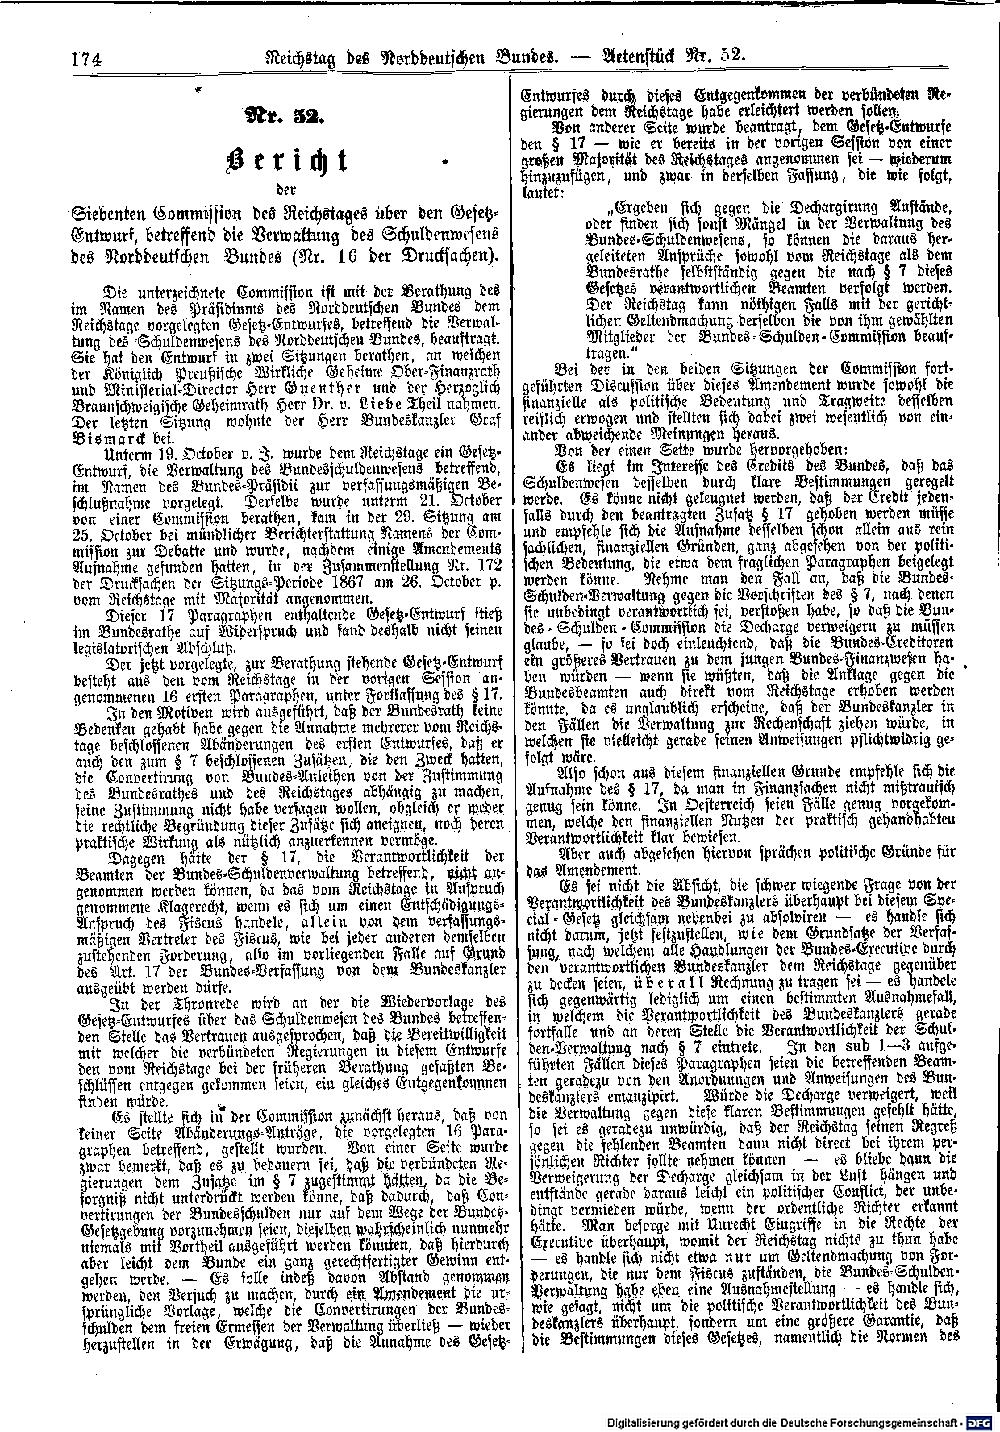 Scan of page 174